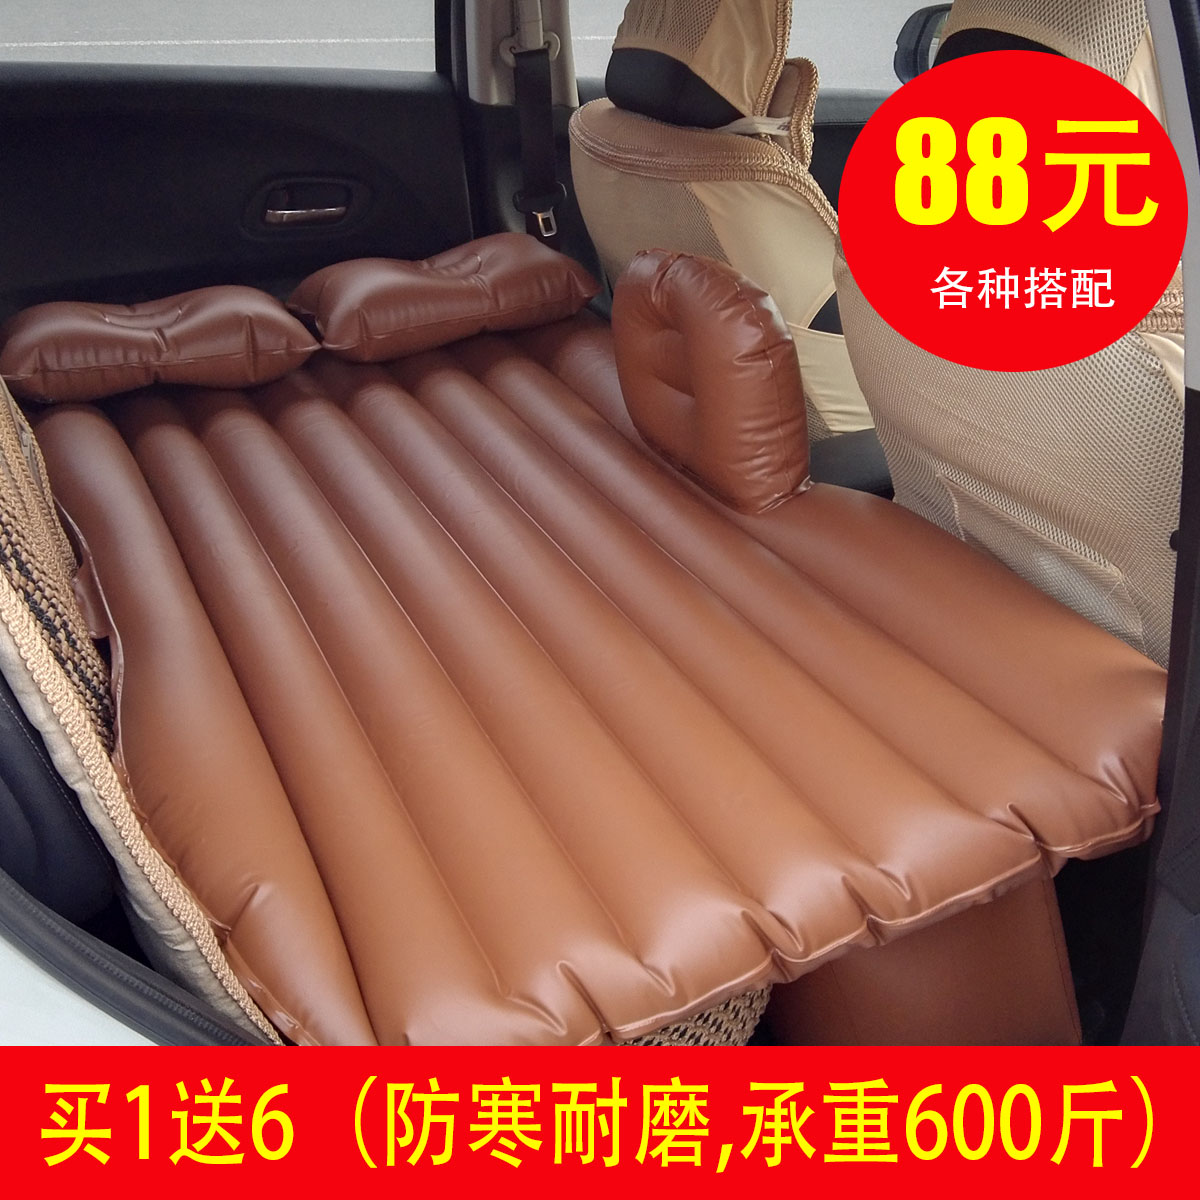 Jingrui car version to enjoy driving the car bed car installation auto parts automotive decorative bed sleeping car